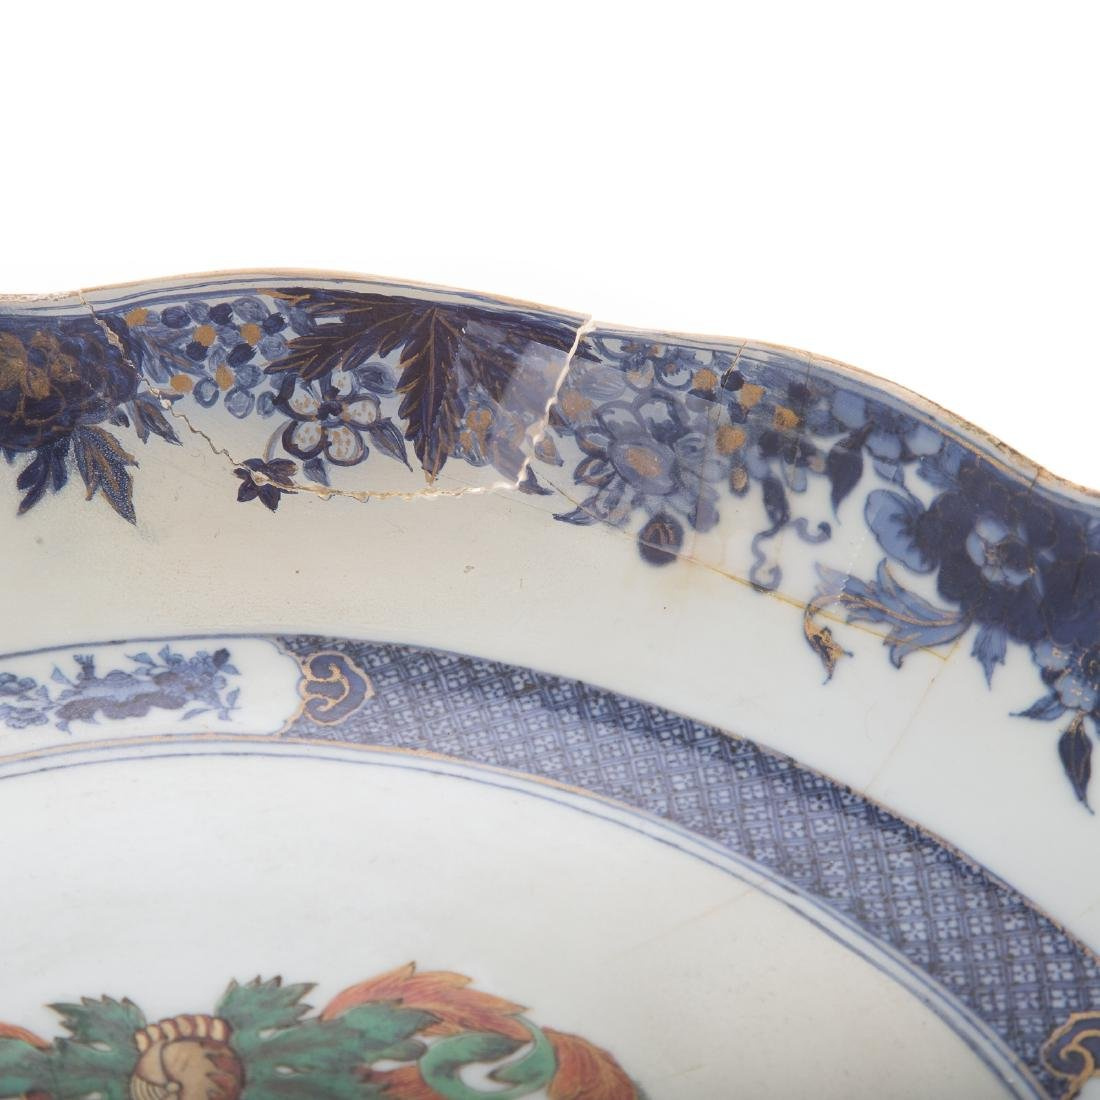 Chinese Export armorial bowl - 3